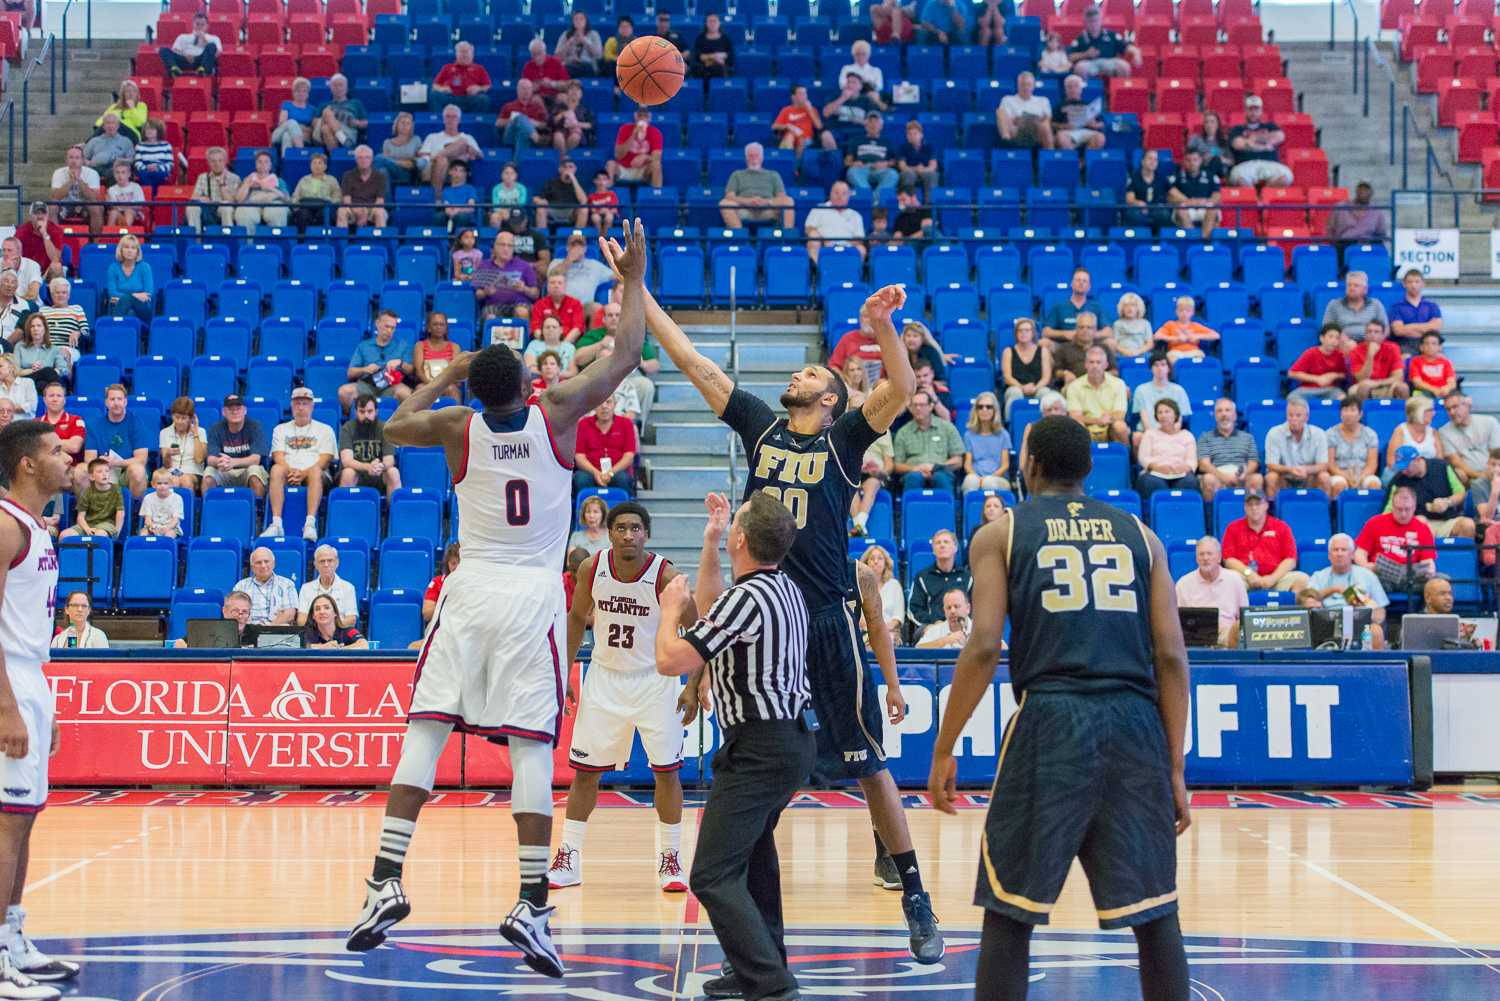 Owl's forward C.J. Turman (0) and FIU forward Adrian Diaz jump for the ball to begin their first match-up of the season.